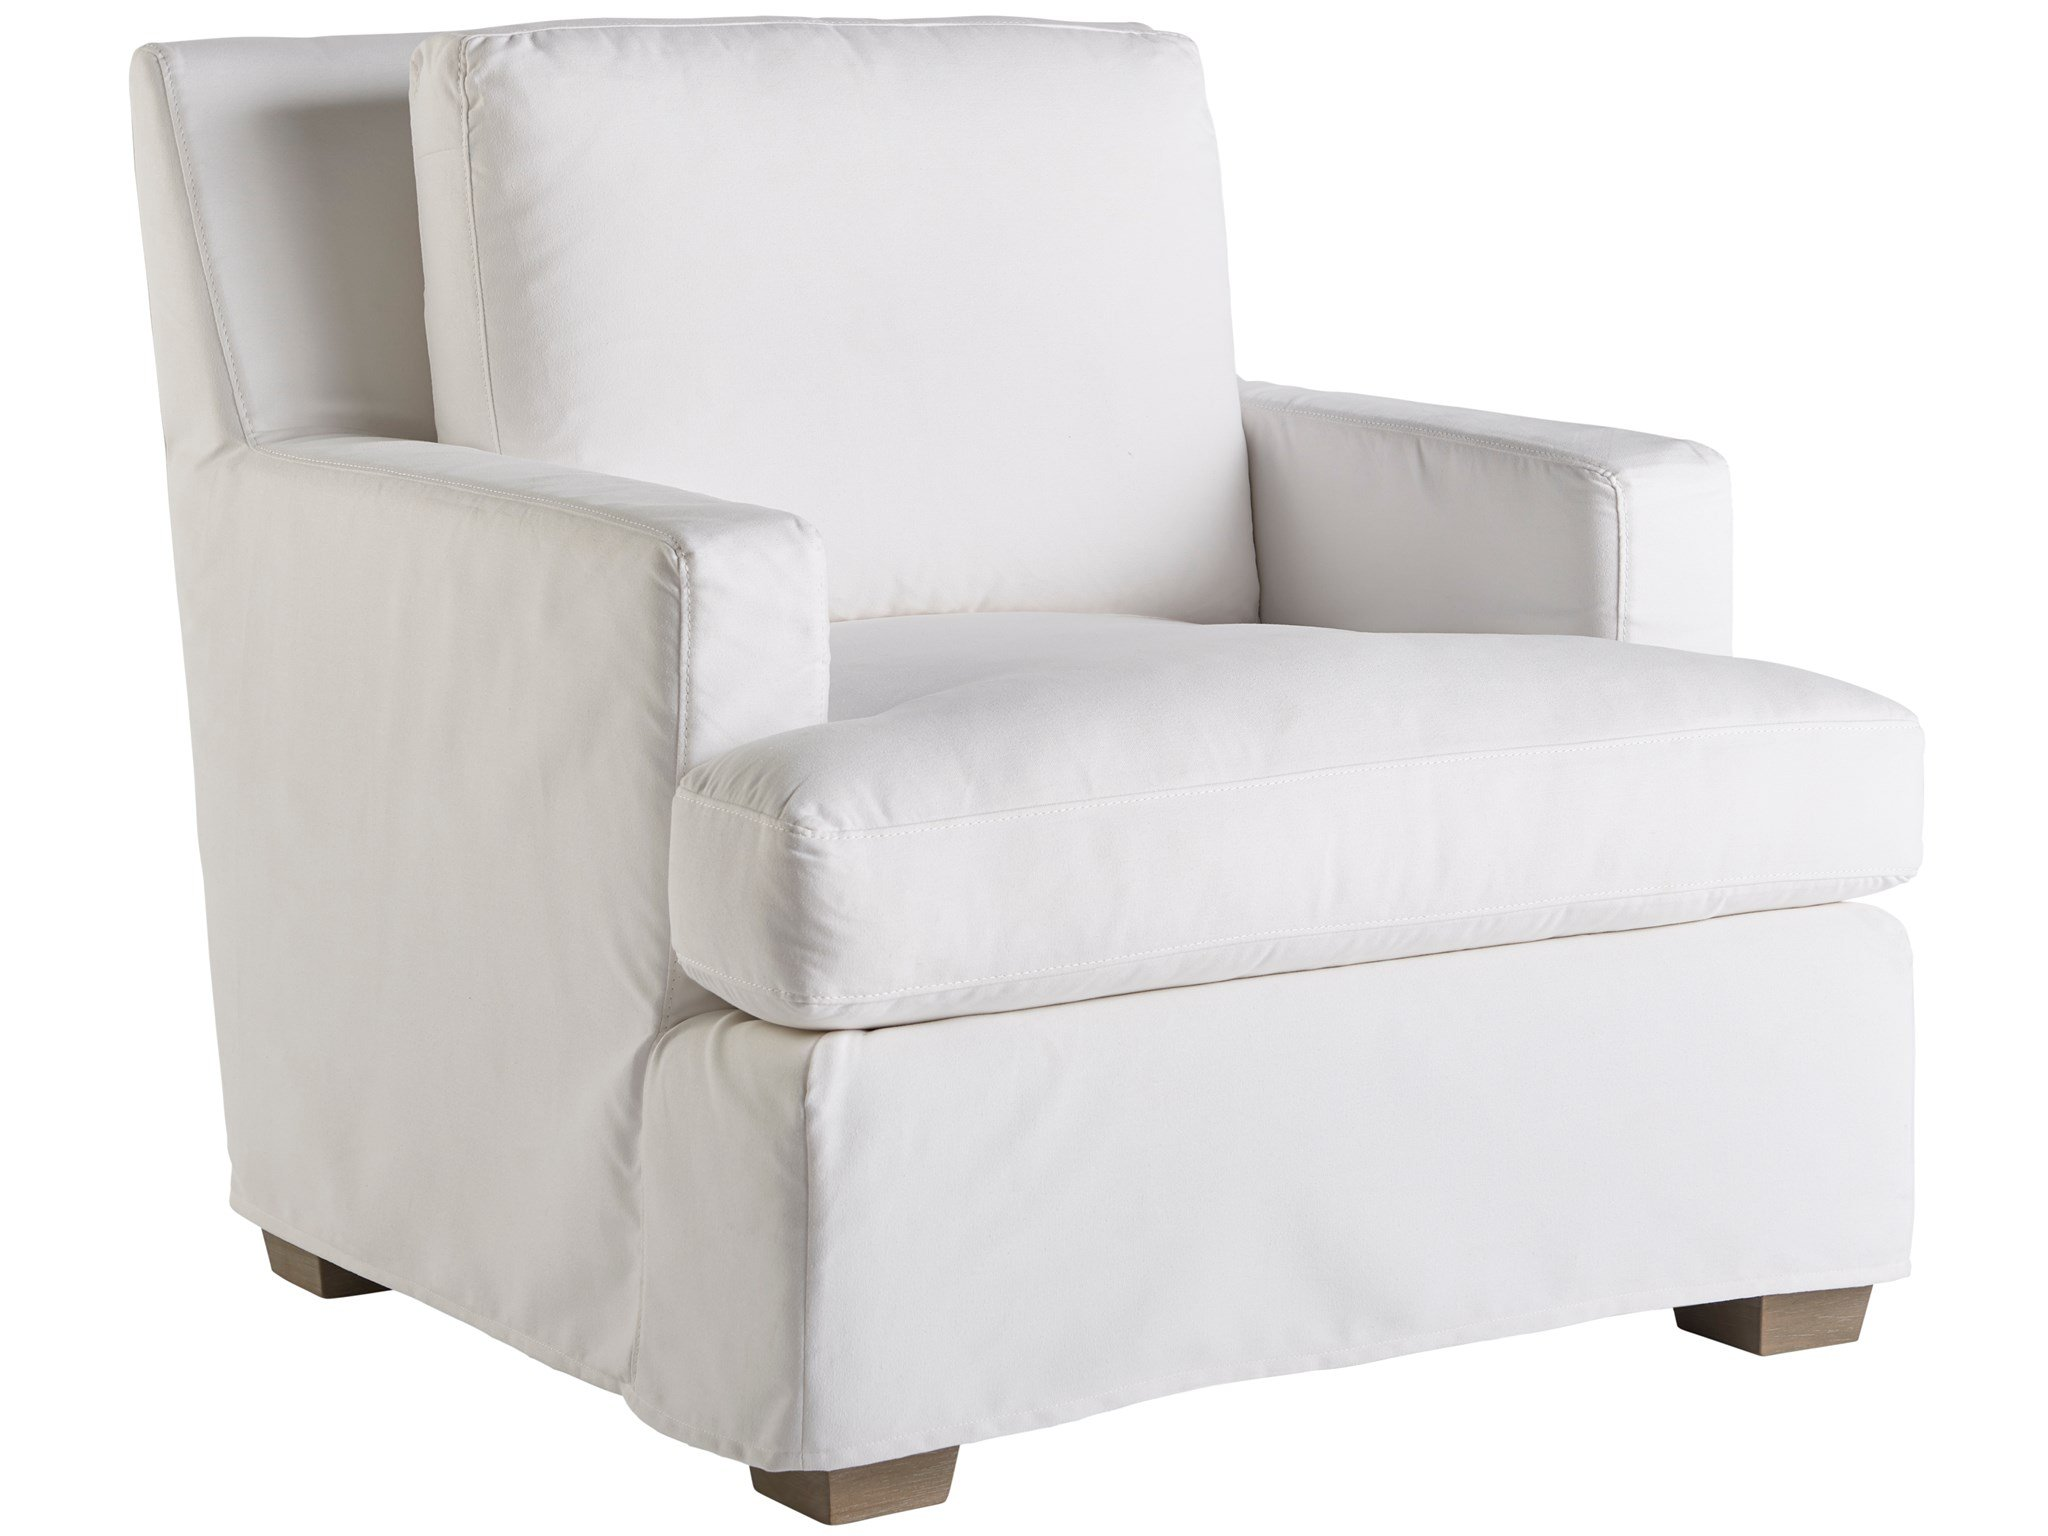 Malibu Slipcover Chair